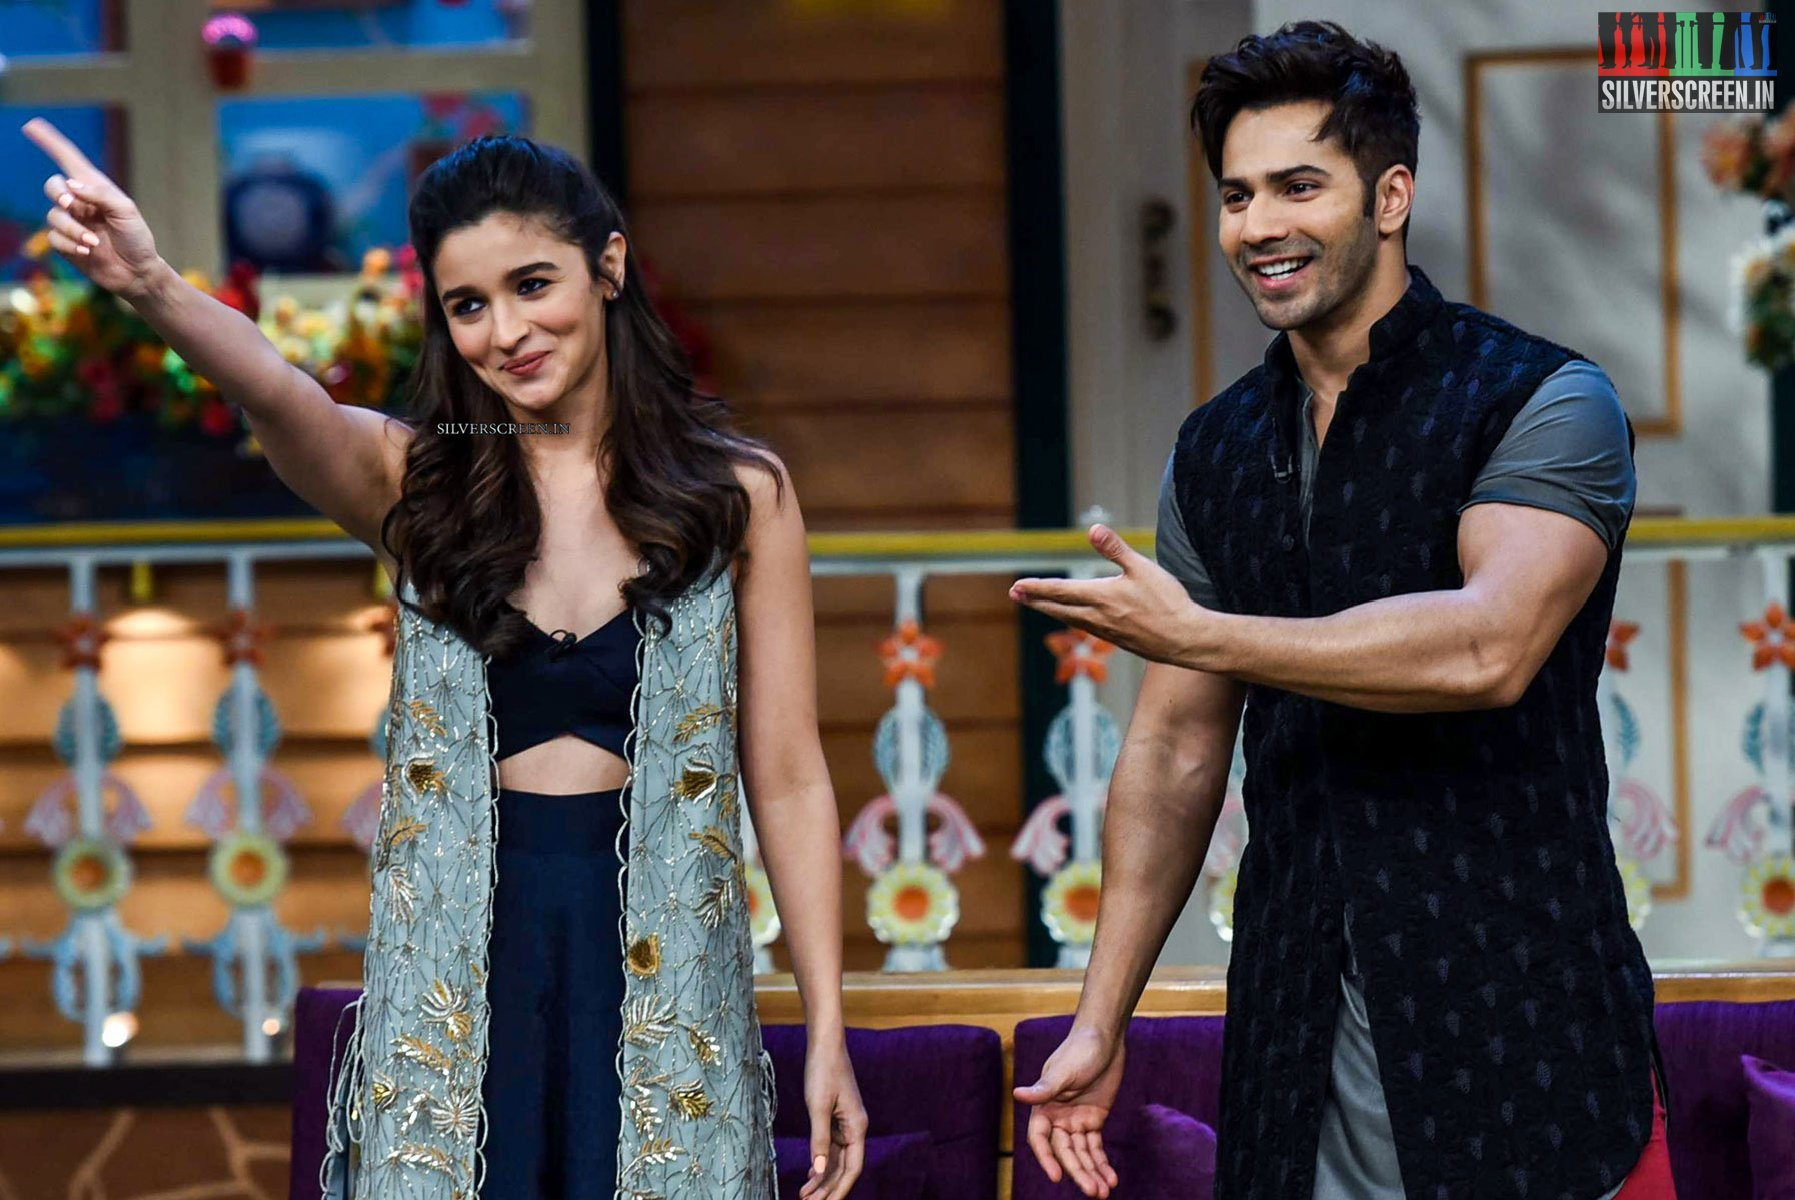 In Pictures: Varun Dhawan and Alia Bhatt Promote ...